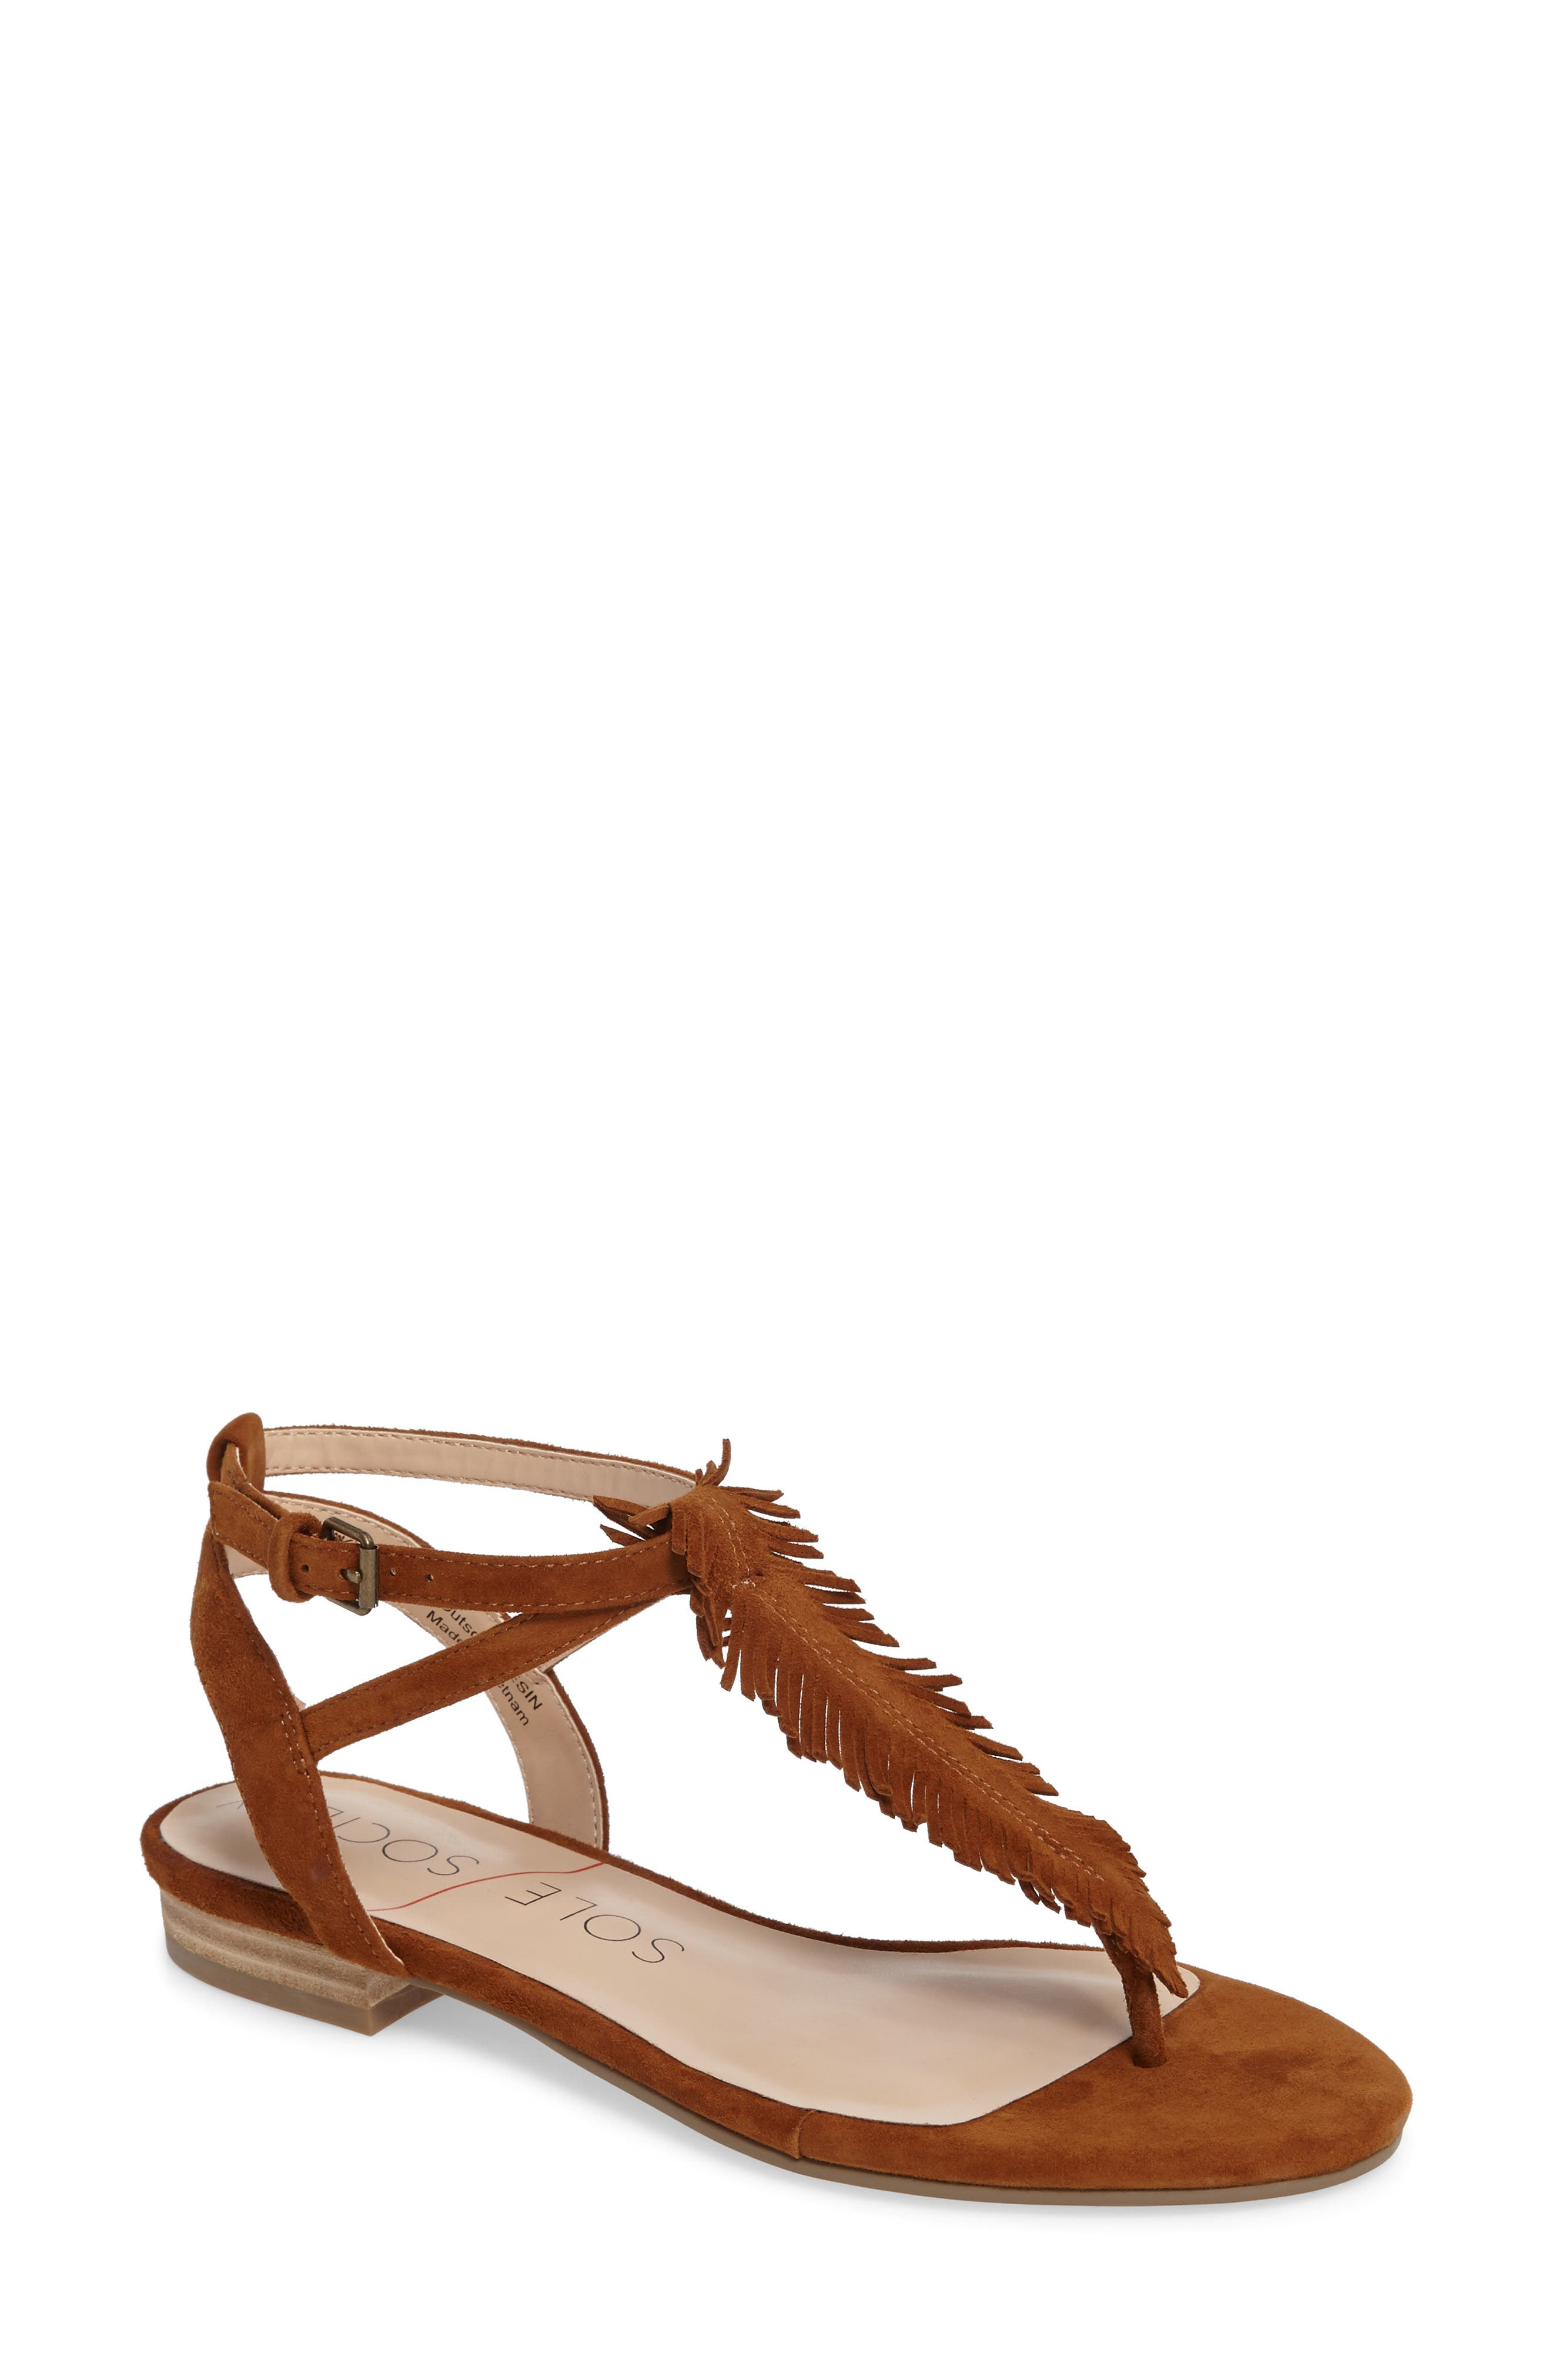 Mara Fringe Thong Sandal,                             Main thumbnail 1, color,                             210